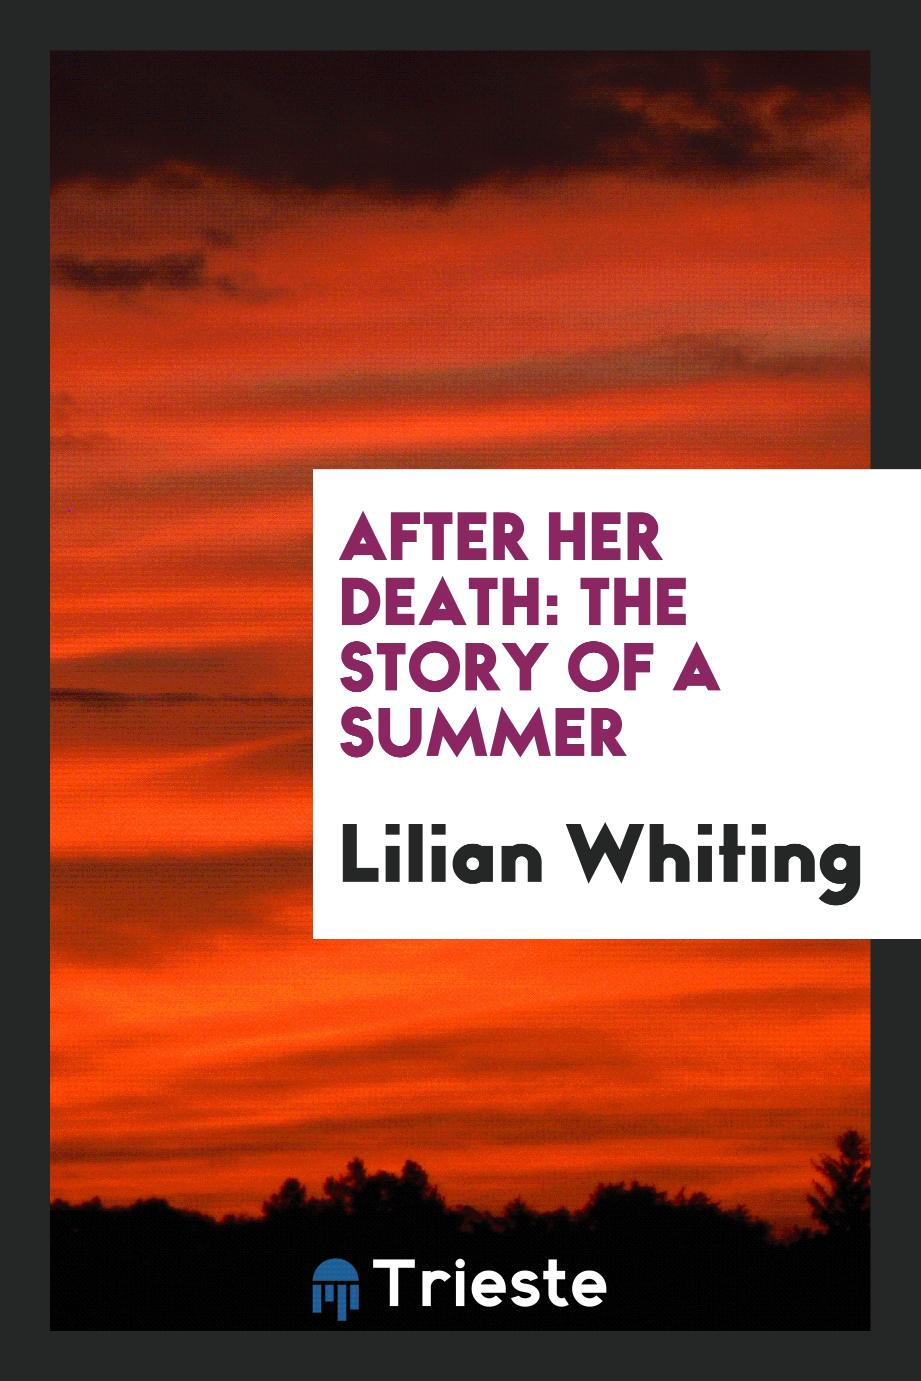 After Her Death: The Story of a Summer